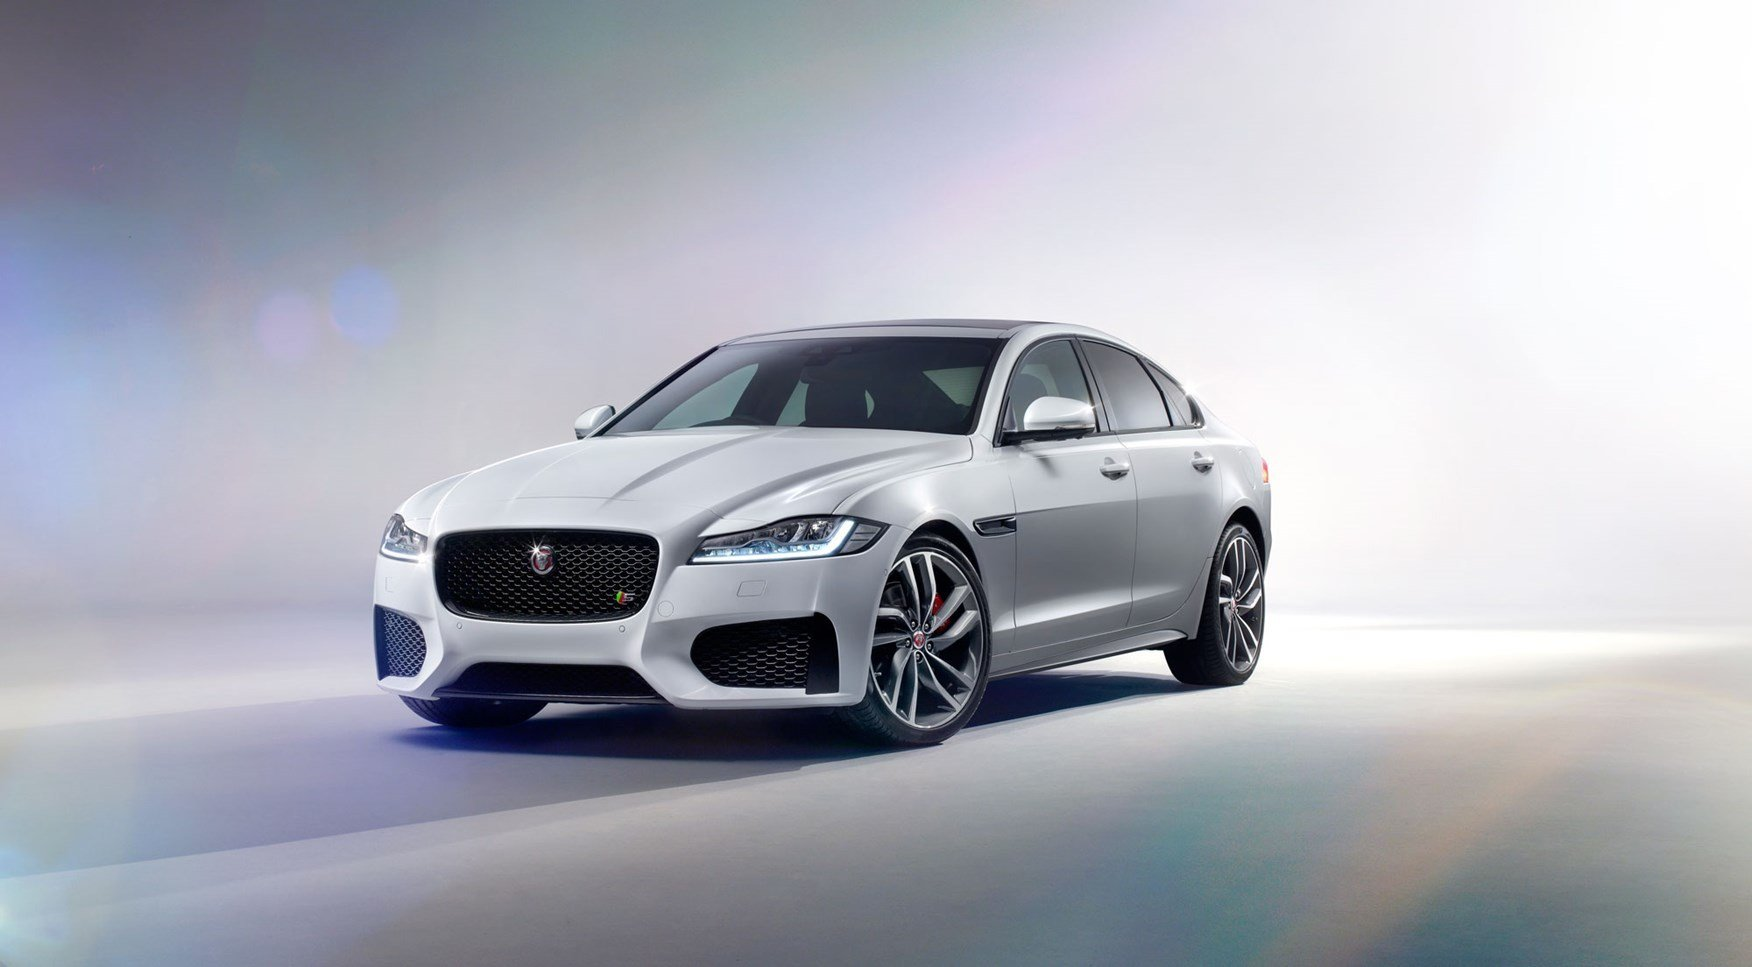 Latest New Jaguar Xf 2015 Revealed Honey I Inflated The Xe By Free Download